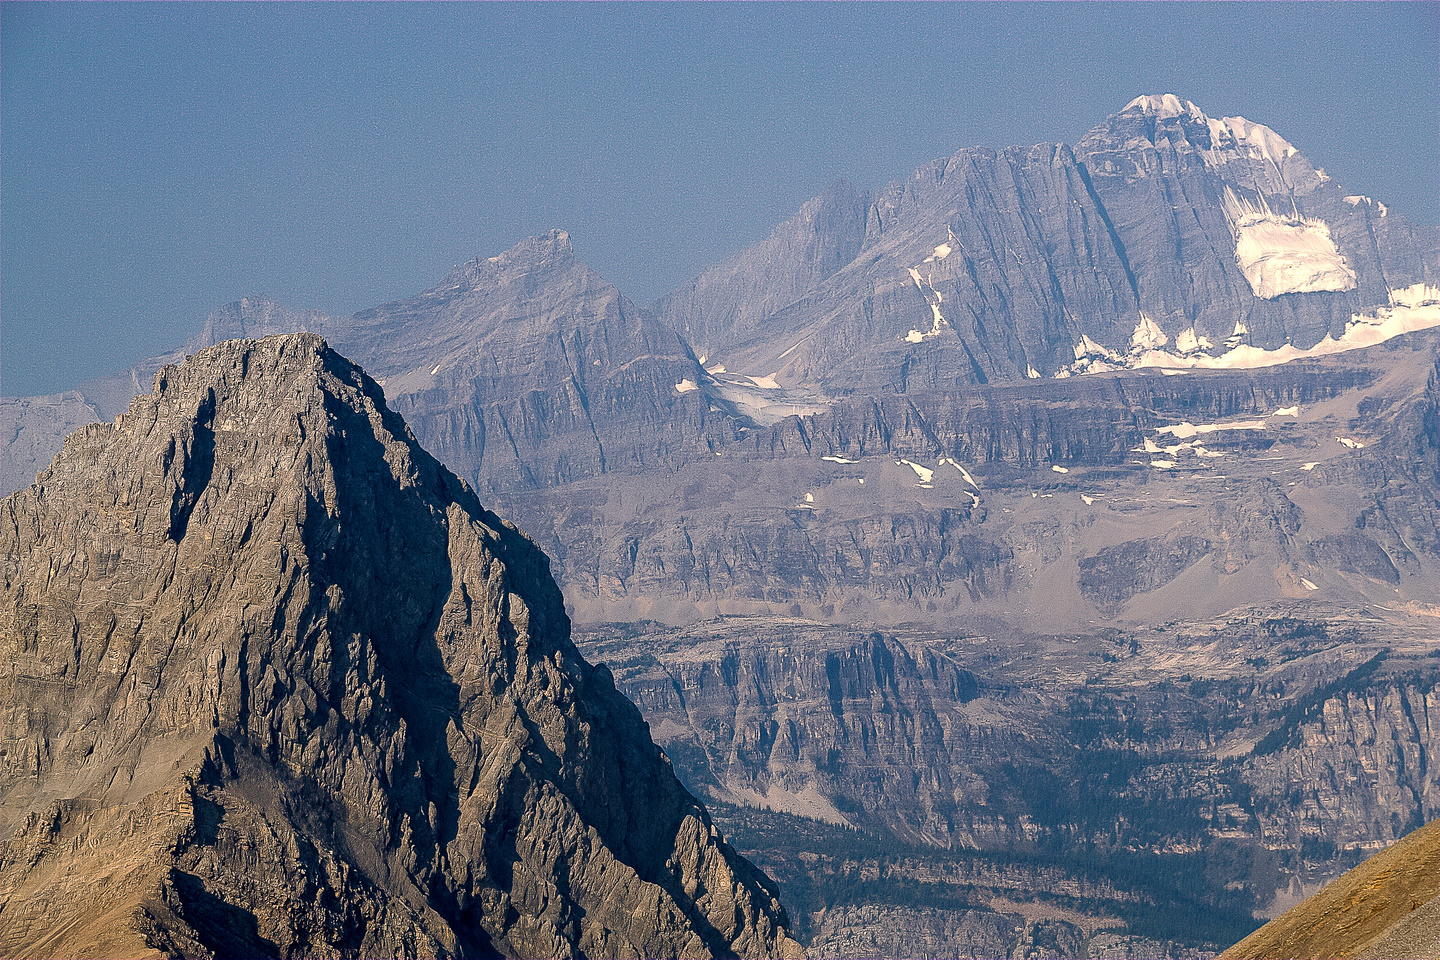 One last look at the giant Mount King George with Princess Mary to the left.